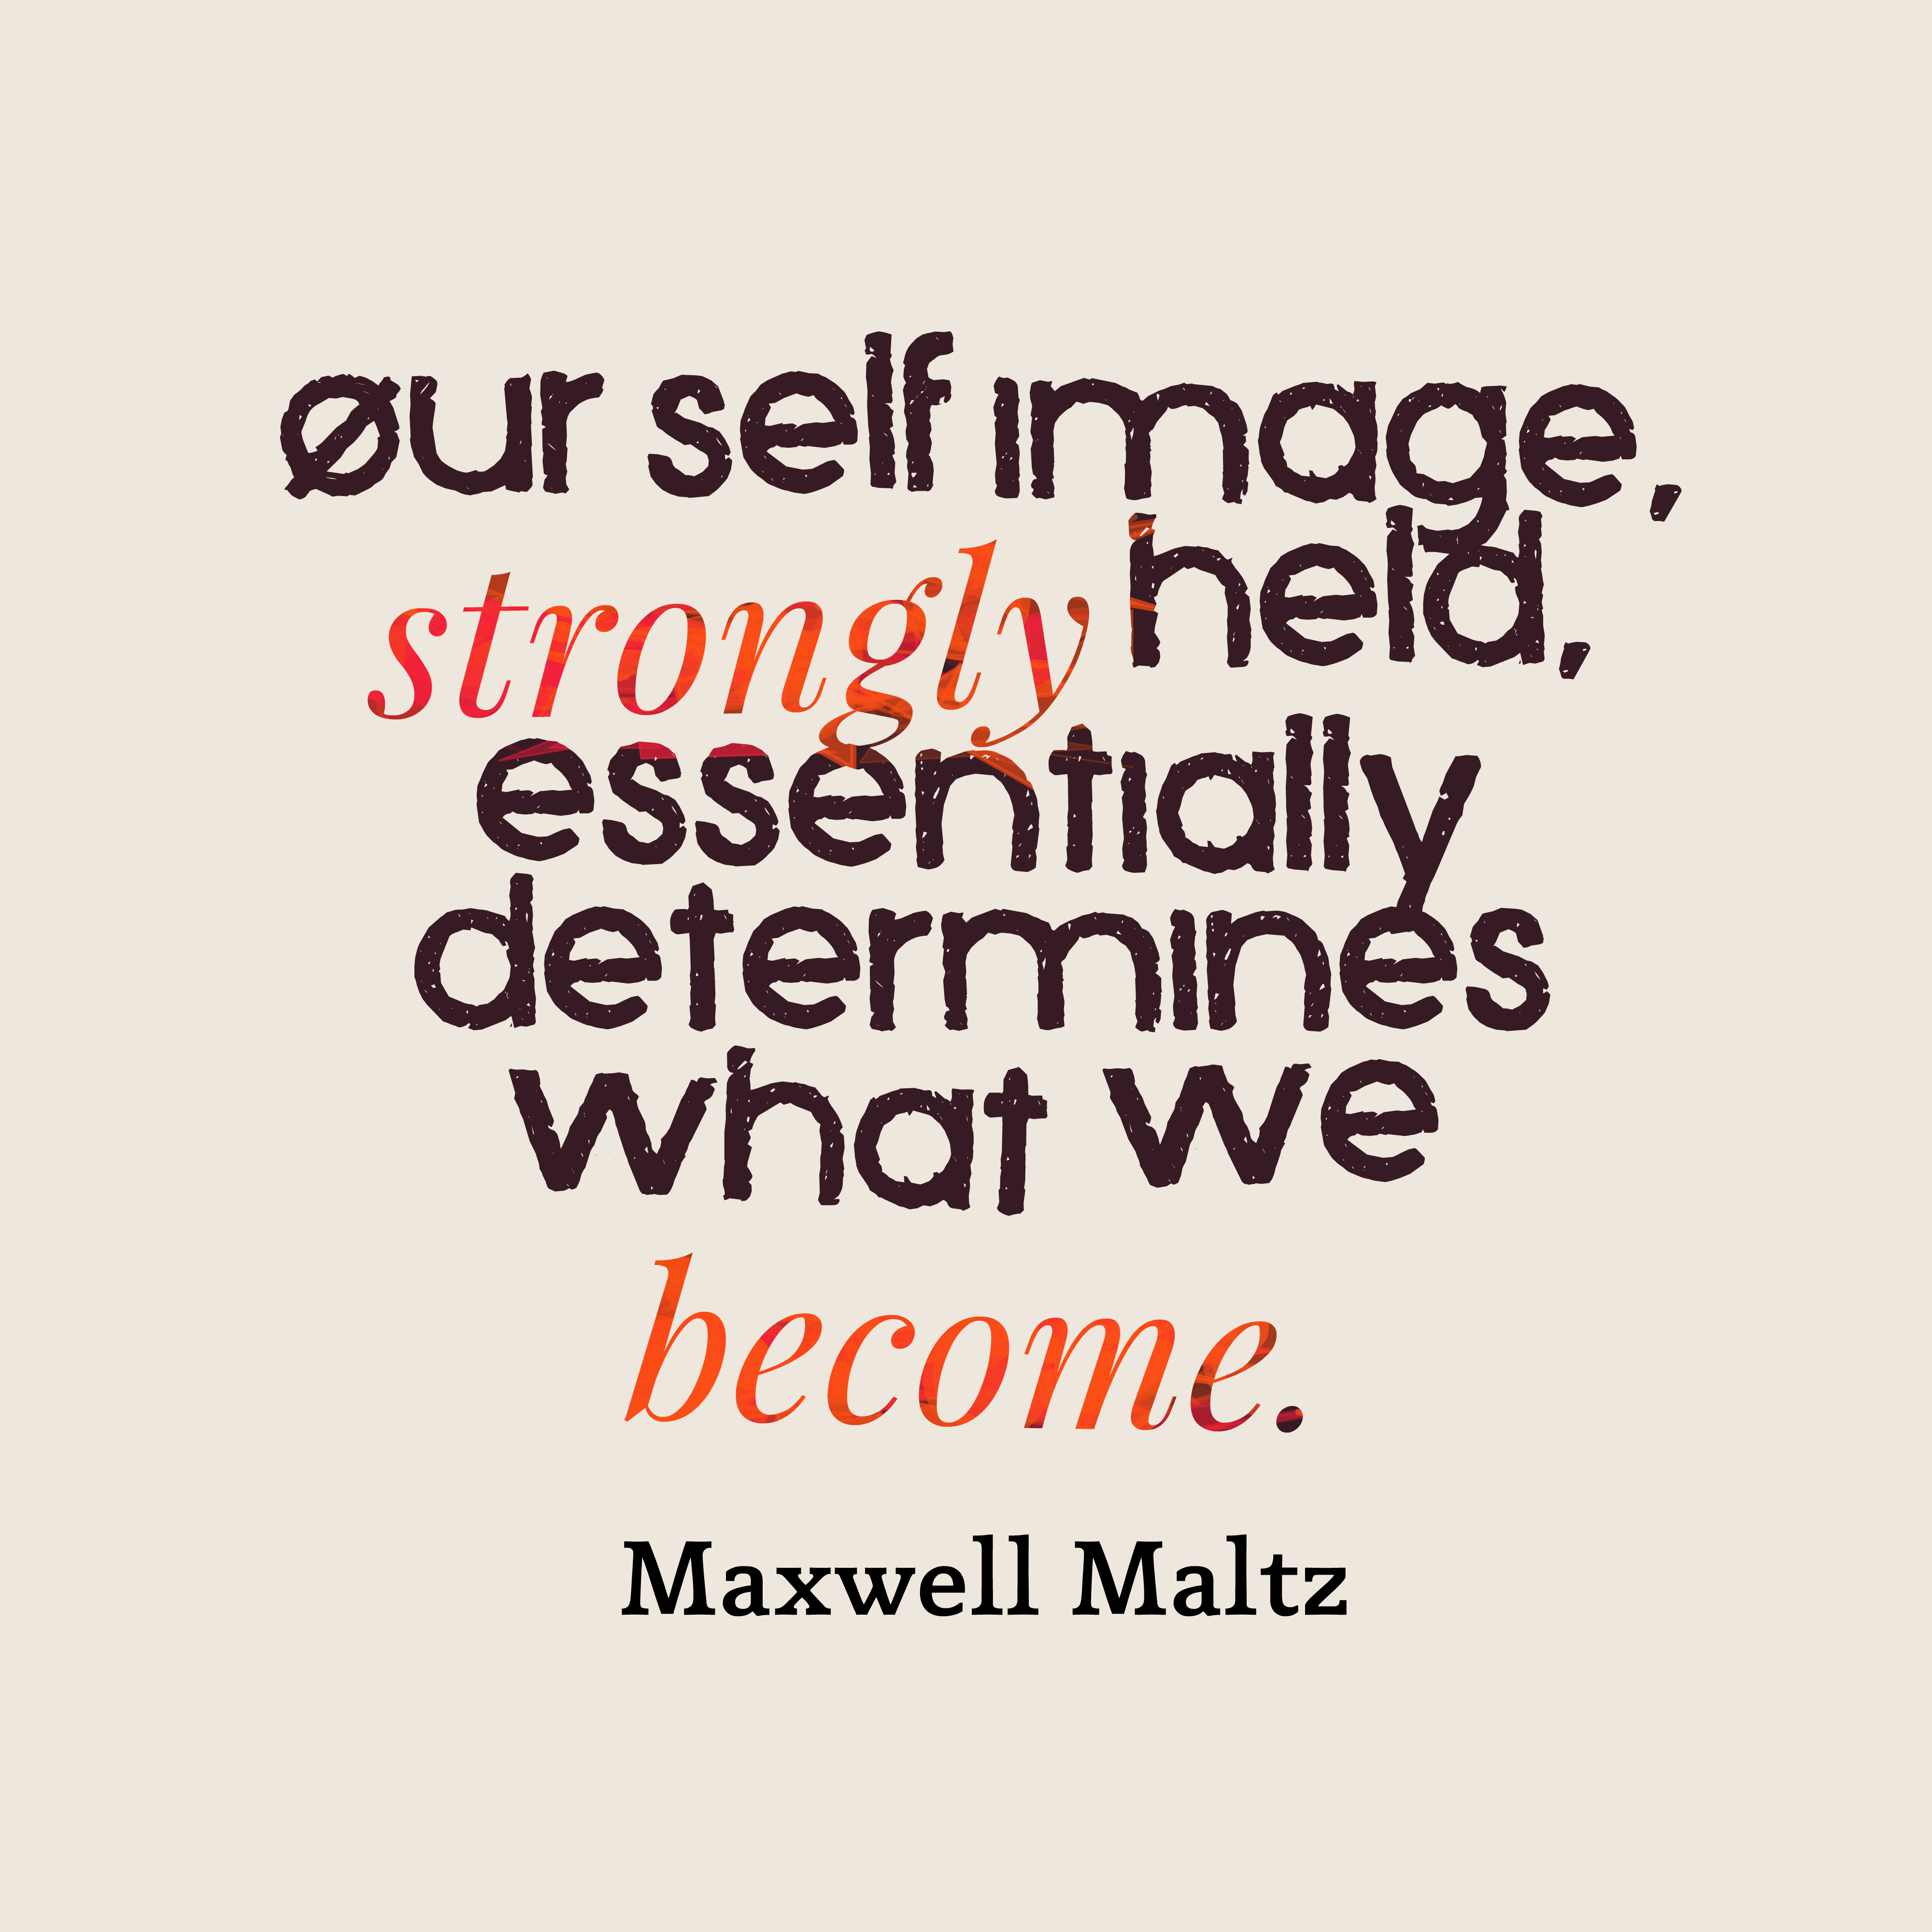 self authorship zinga hart - Quote is Our Self Image, strongly held, essentially determines what we become